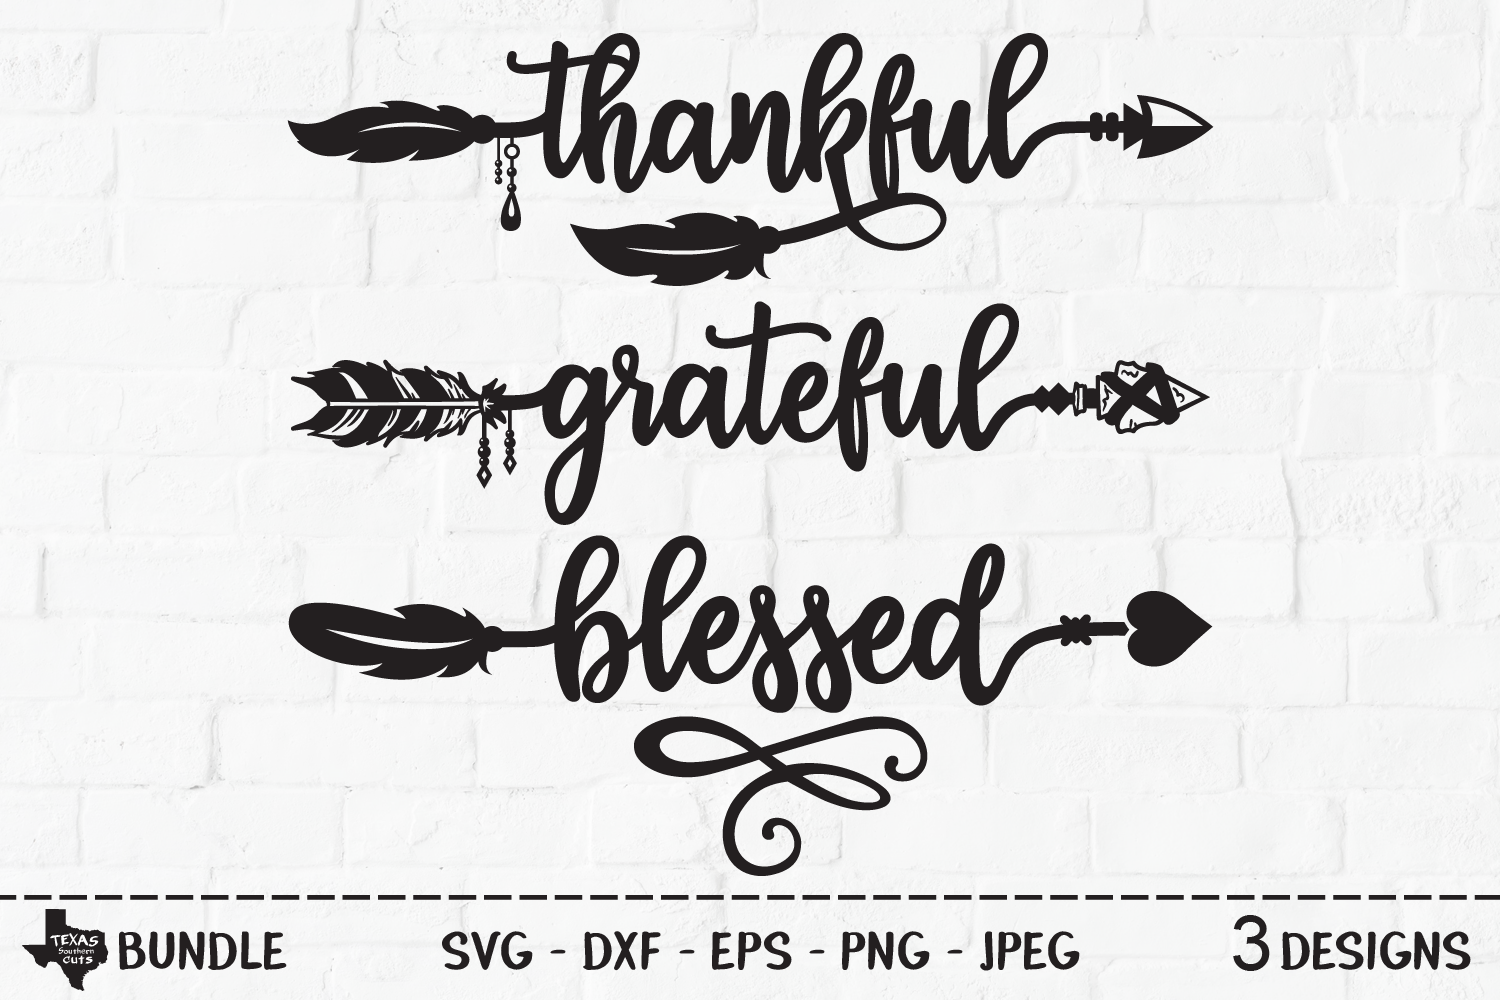 Download Free Thanksgiving Arrow Bundle Graphic By Texassoutherncuts for Cricut Explore, Silhouette and other cutting machines.